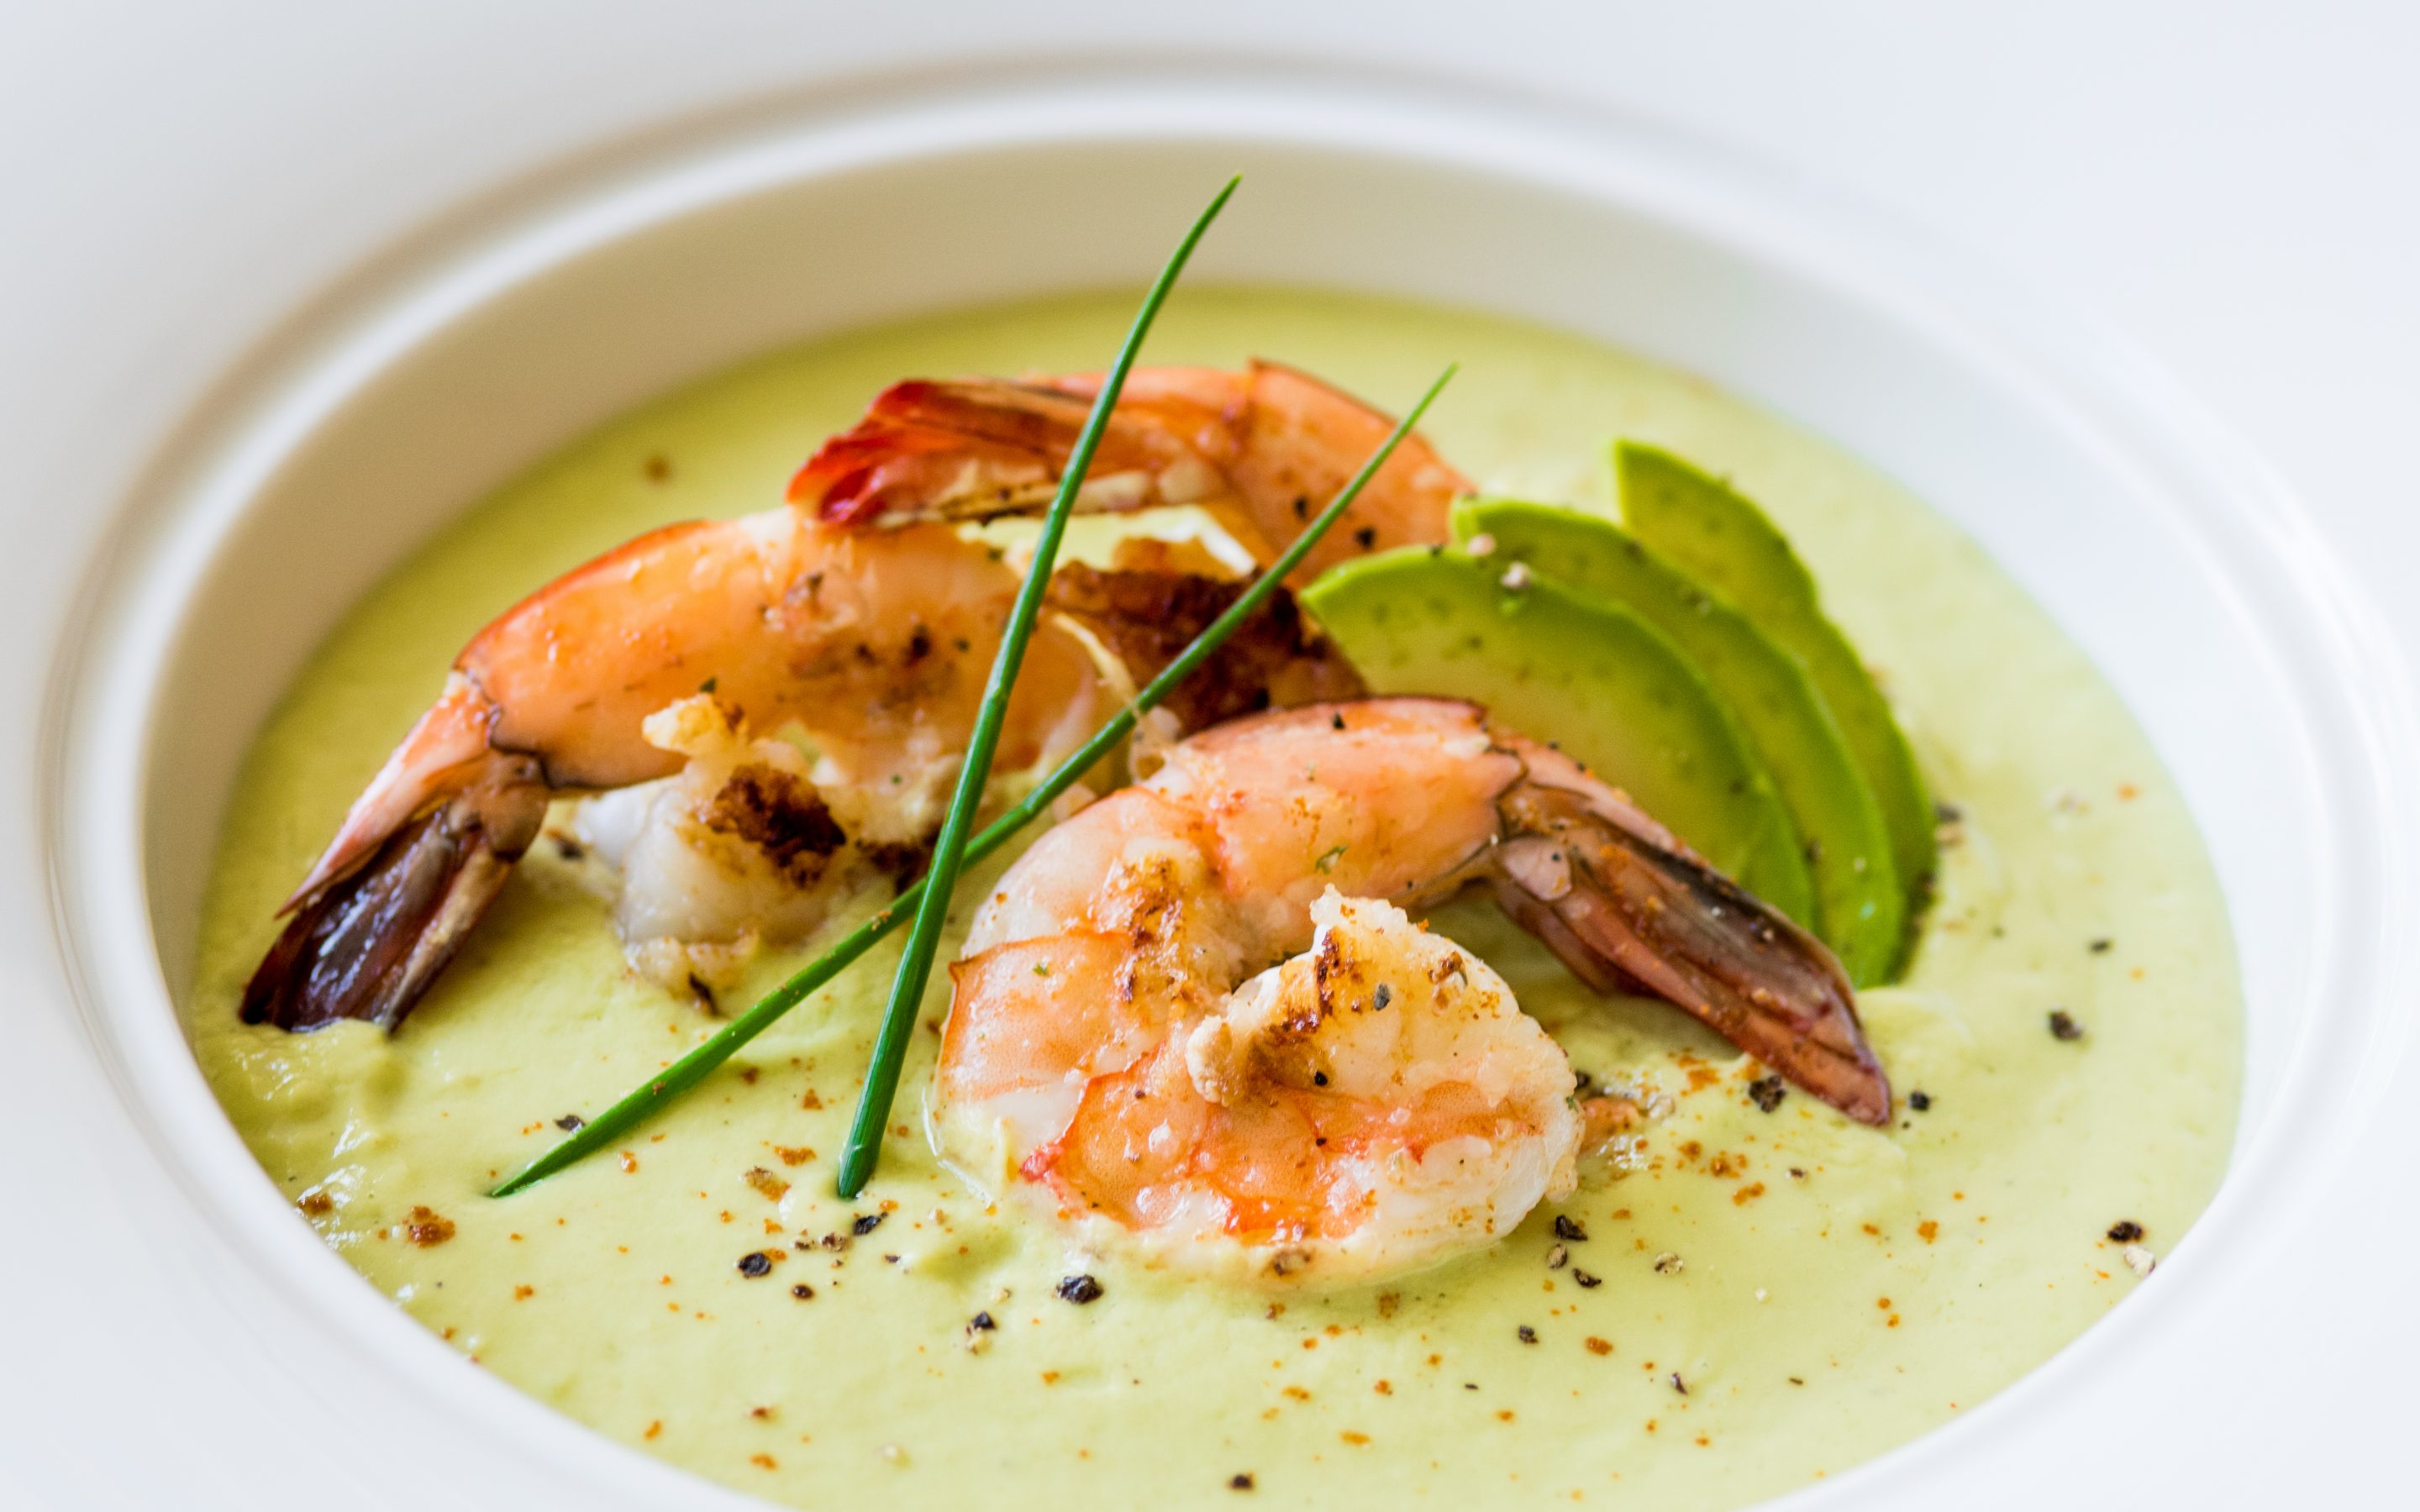 CHILLED AVOCADO SOUP WITH GRILLED SPICY SHRIMP